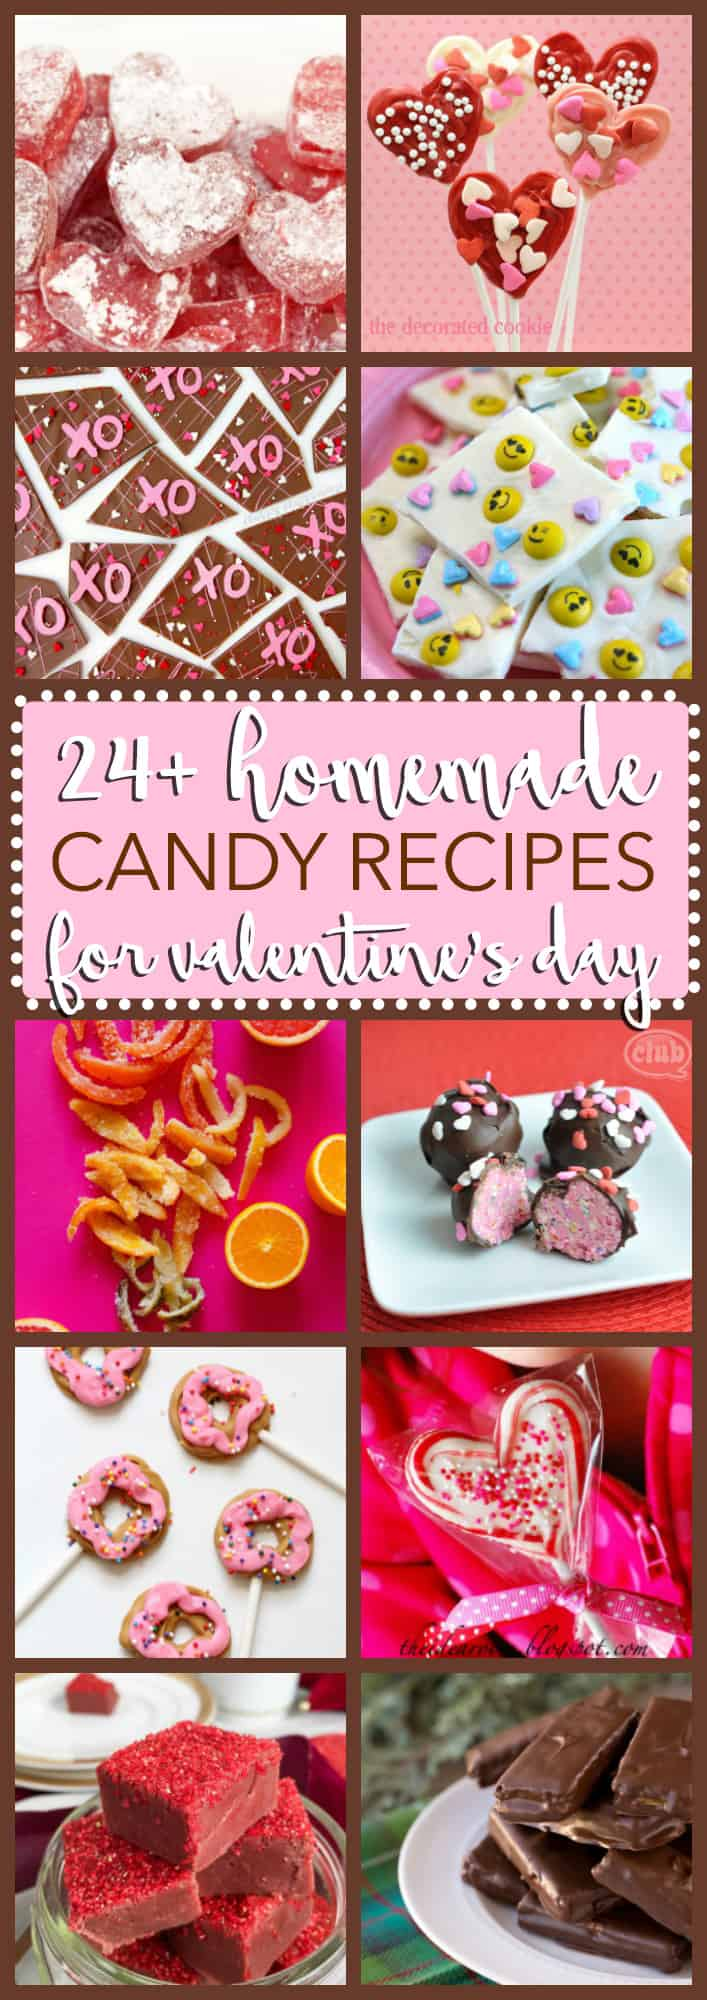 Fudge, chocolate, hard candy, lollipops and more! All sorts of fun homemade candy recipes to help you celebrate Valentine's Day in style.